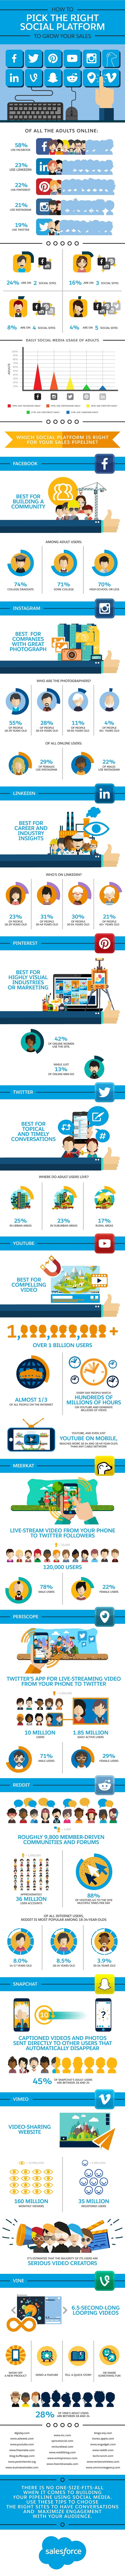 160607-the-perfect-social-platform-for-your-business-infographic-preview